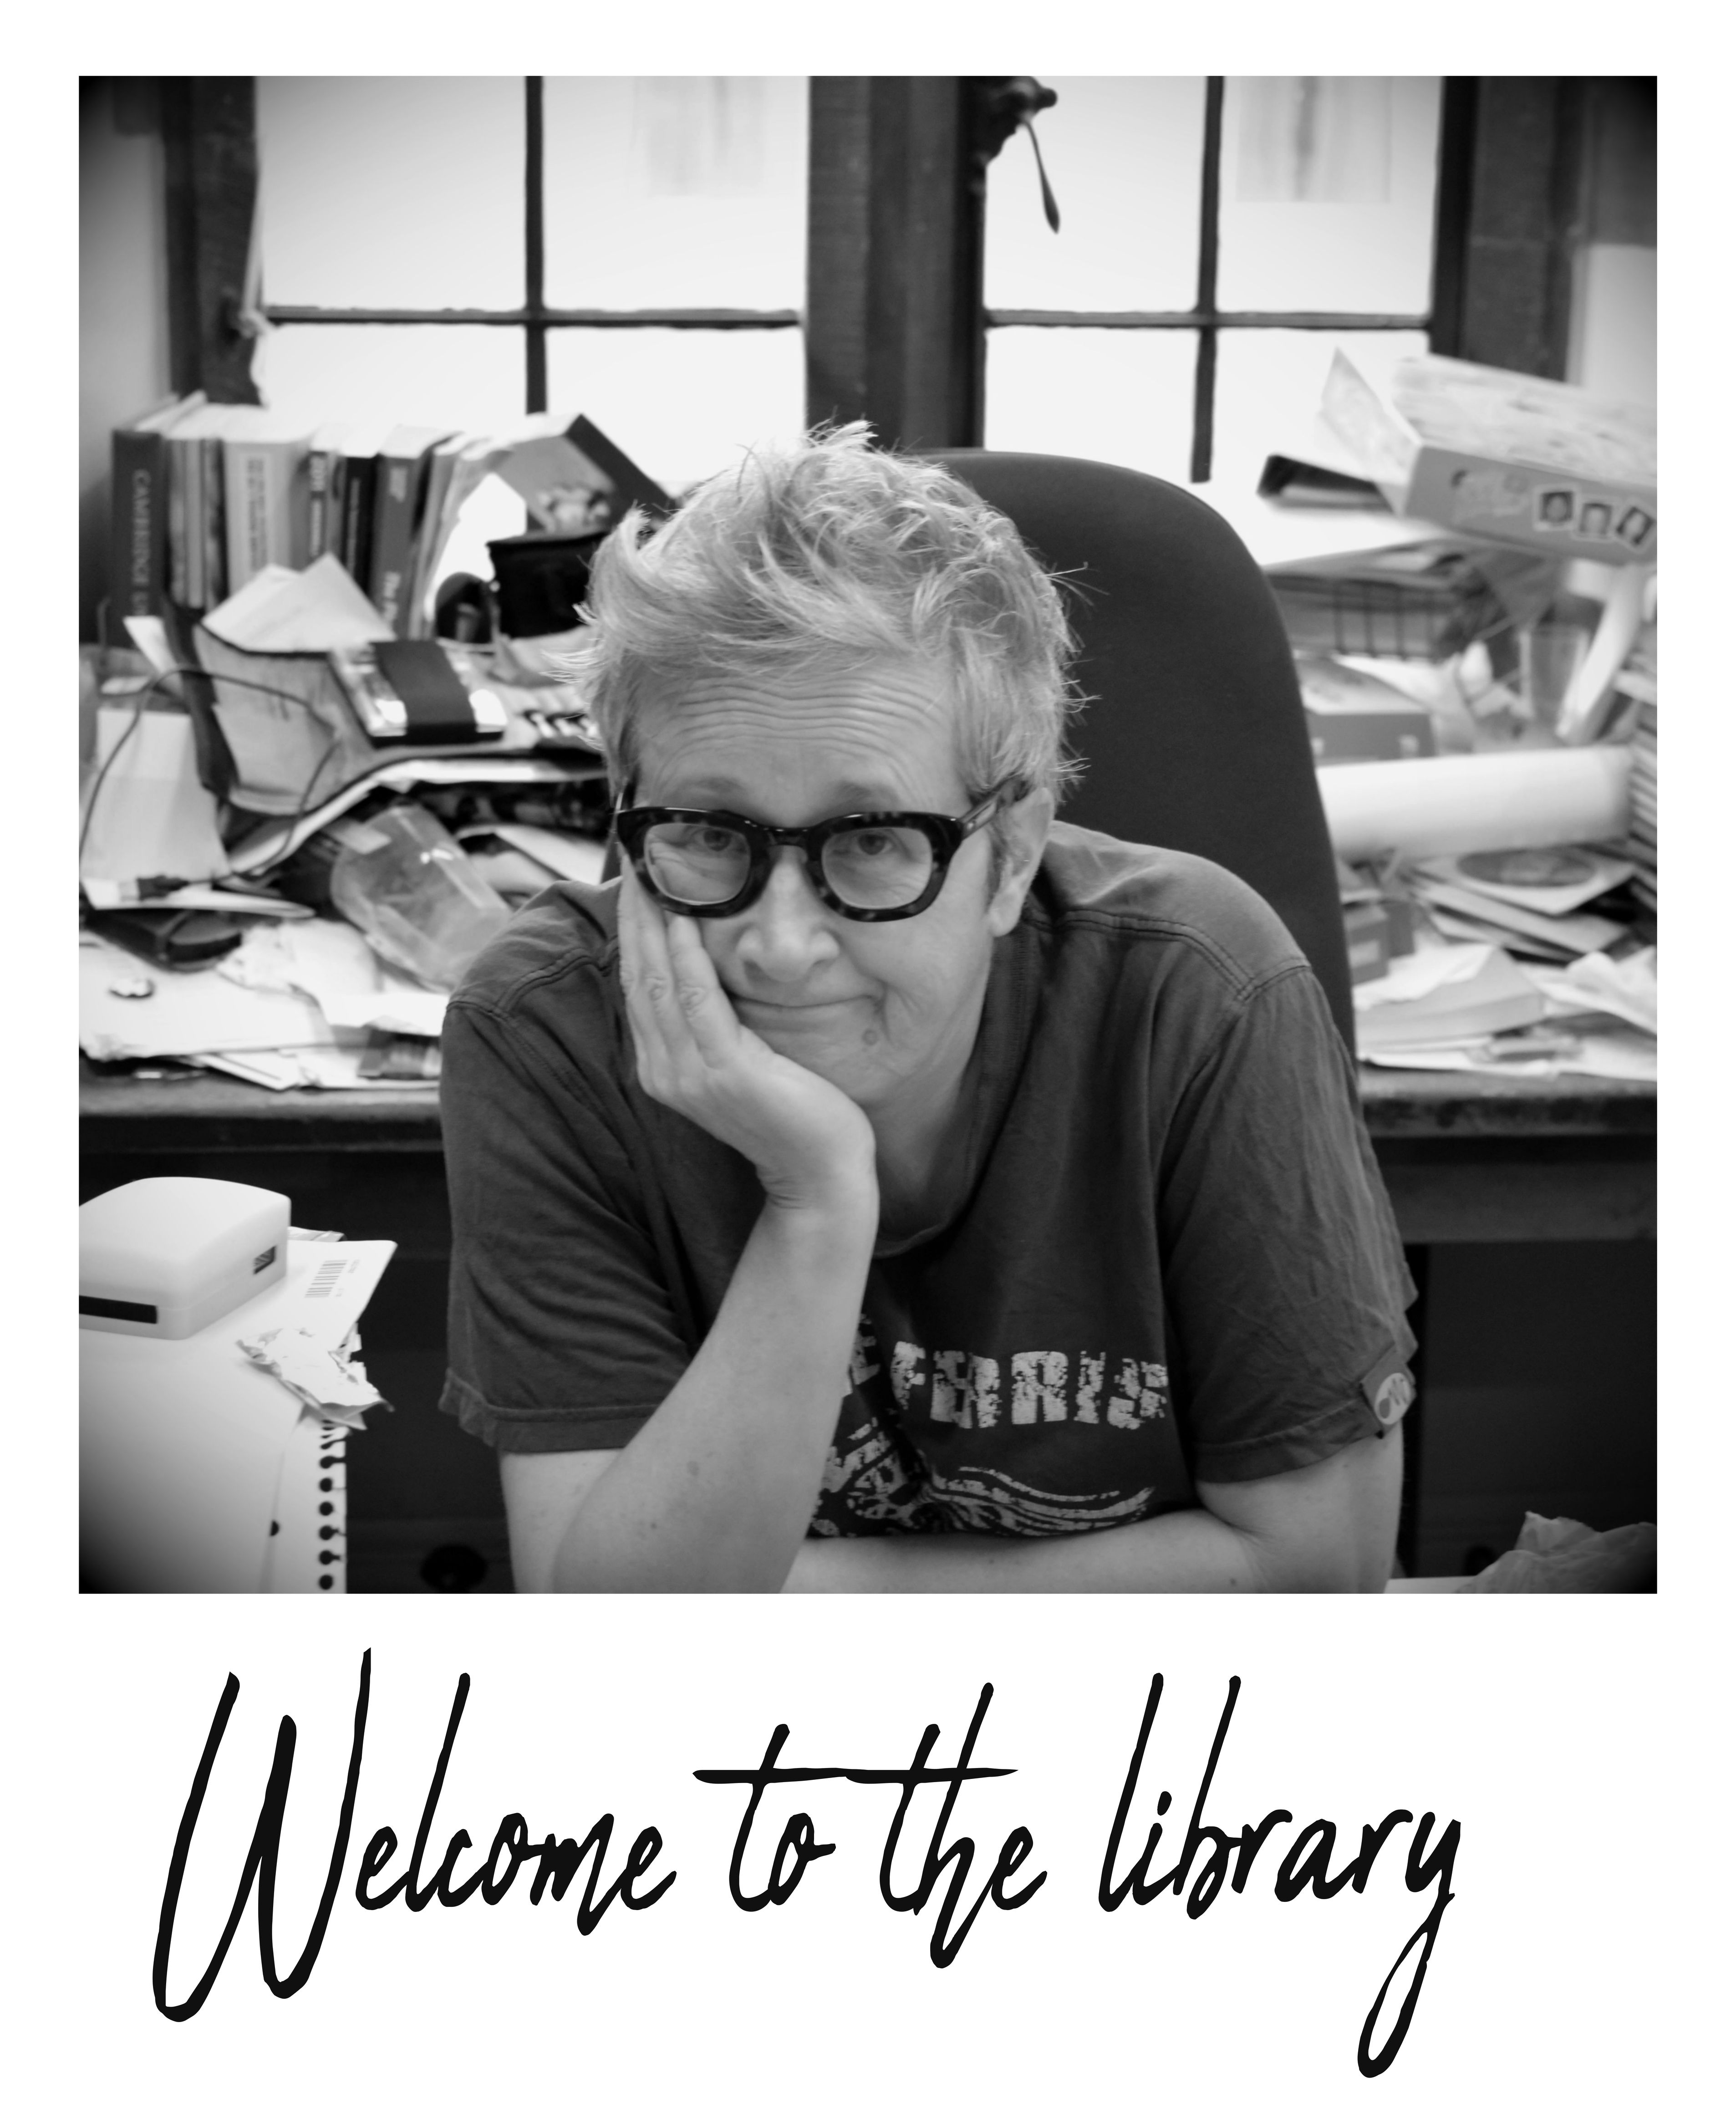 Picture of the librarian and the words welcome to the library